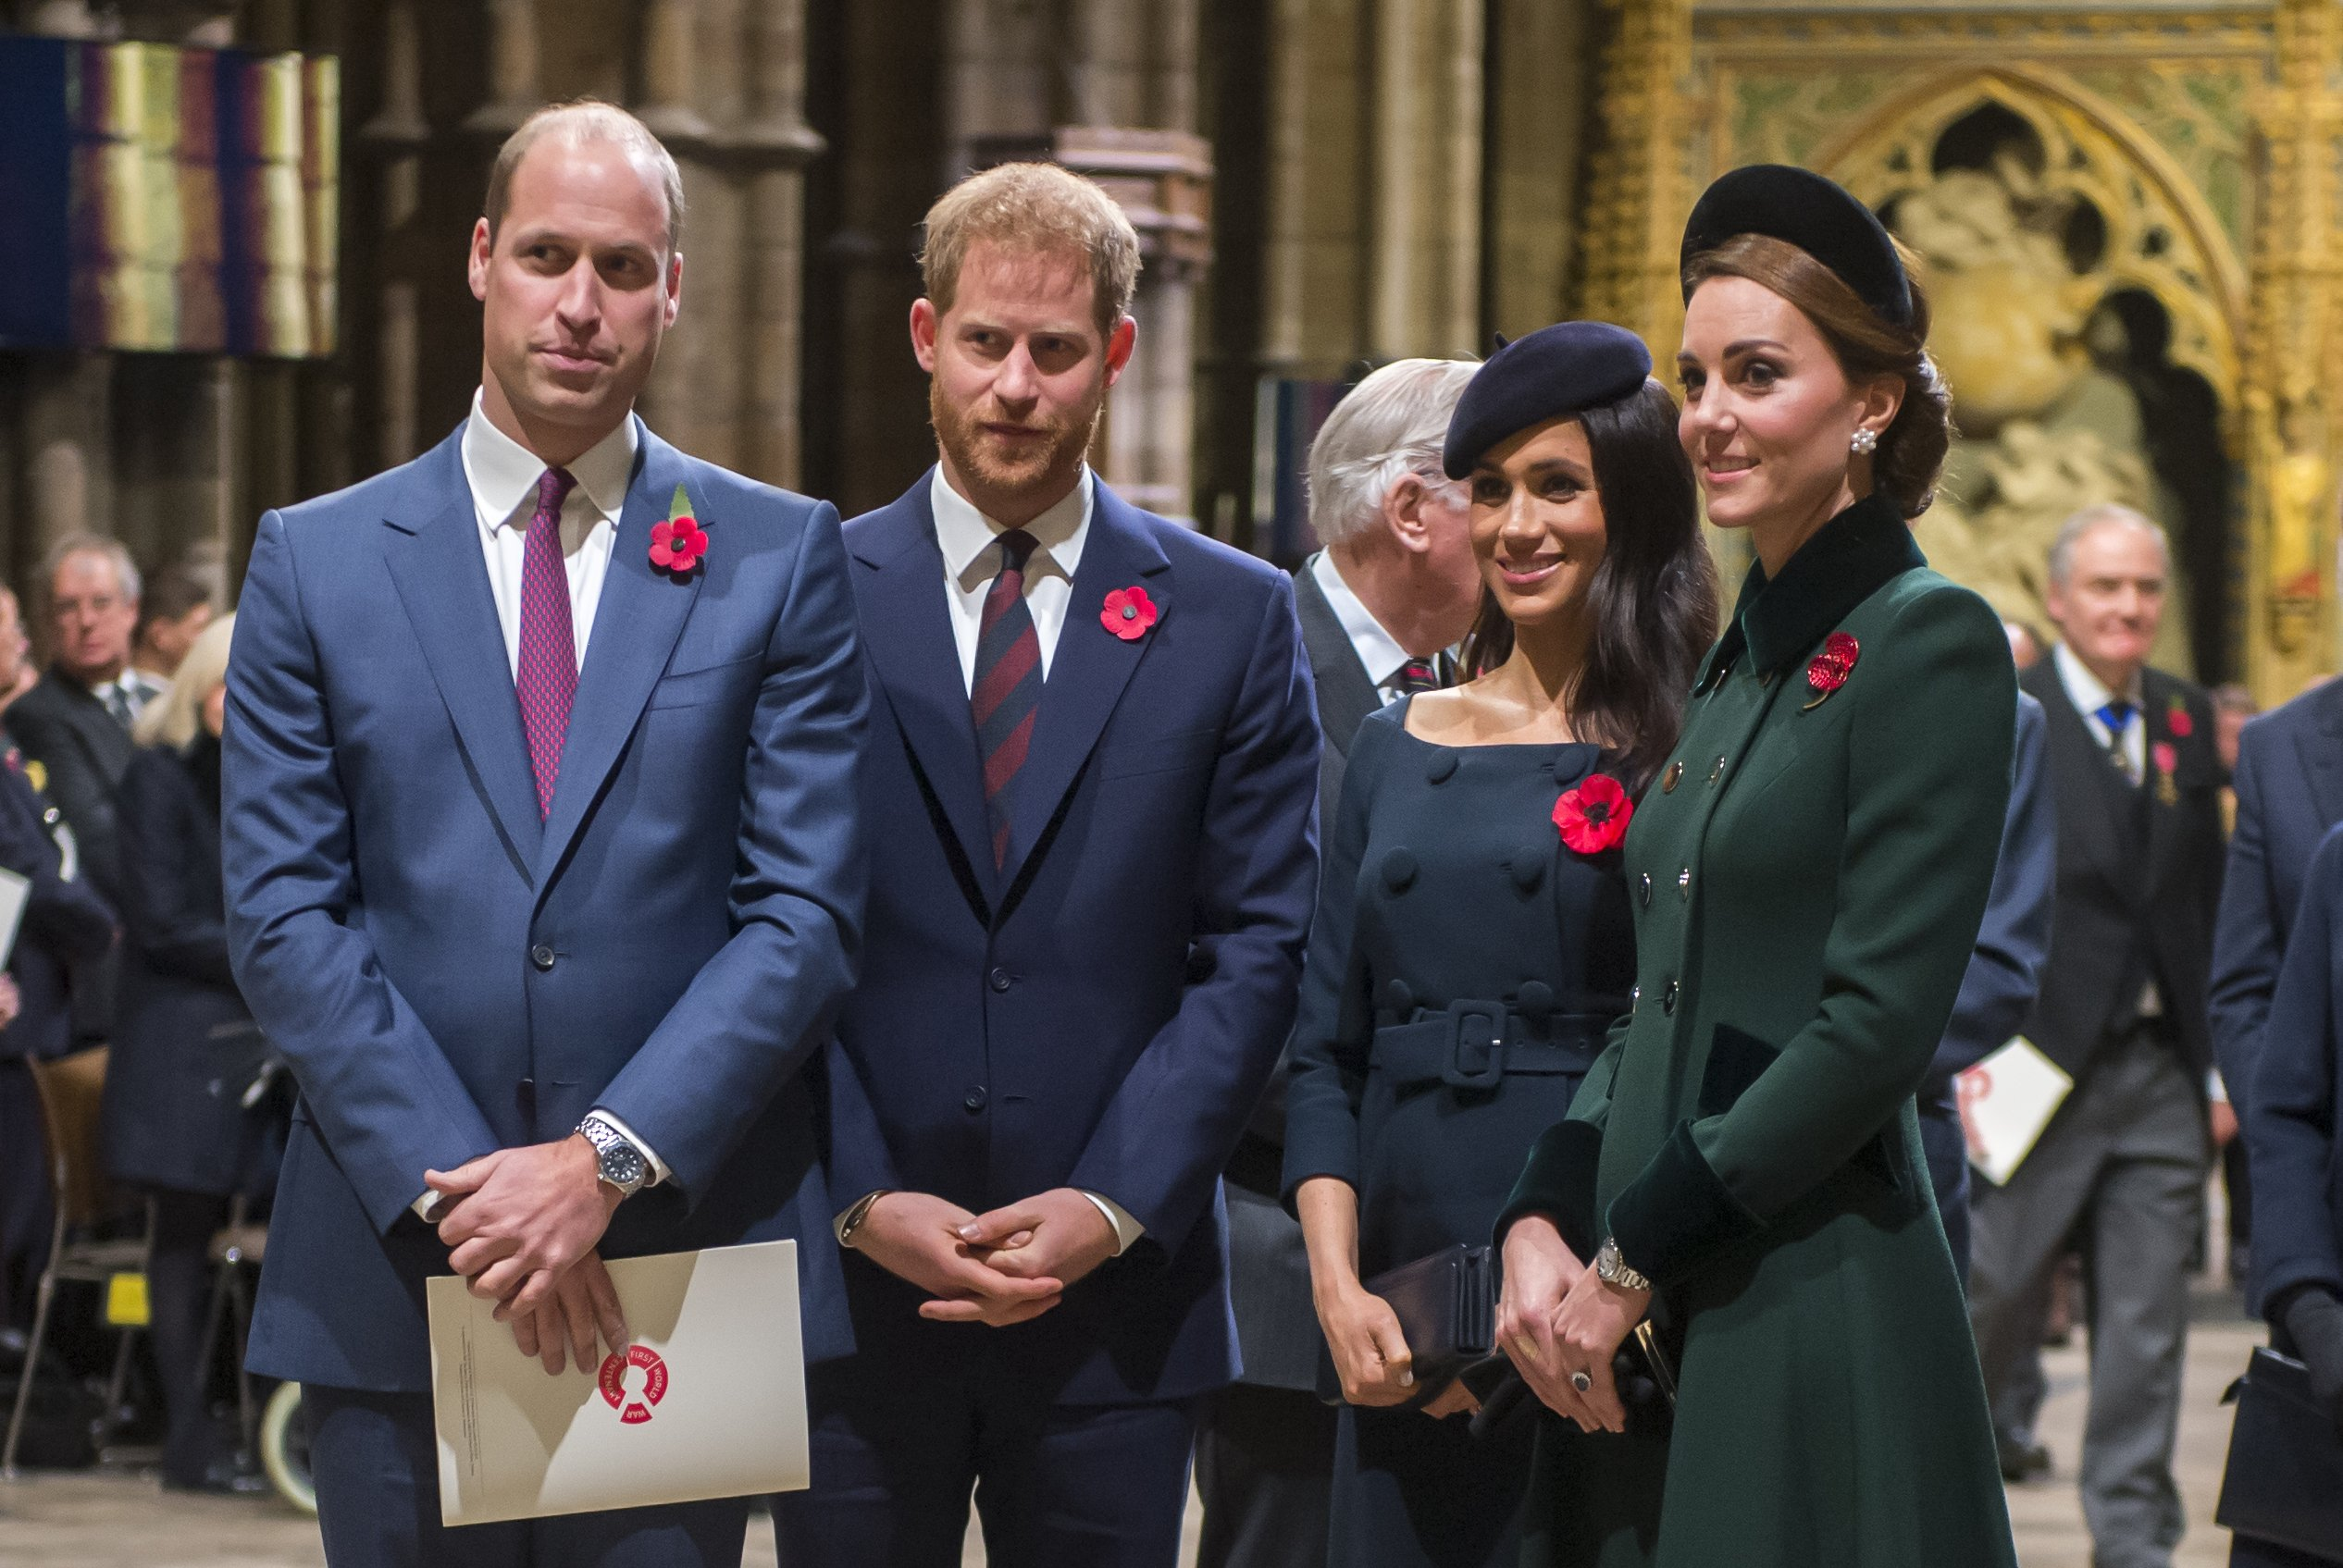 Prince William, Kate Middleton, Prince Harry and Meghan Markle attend a service at Westminster Abbey on November 11, 2018   Photo: Getty Images